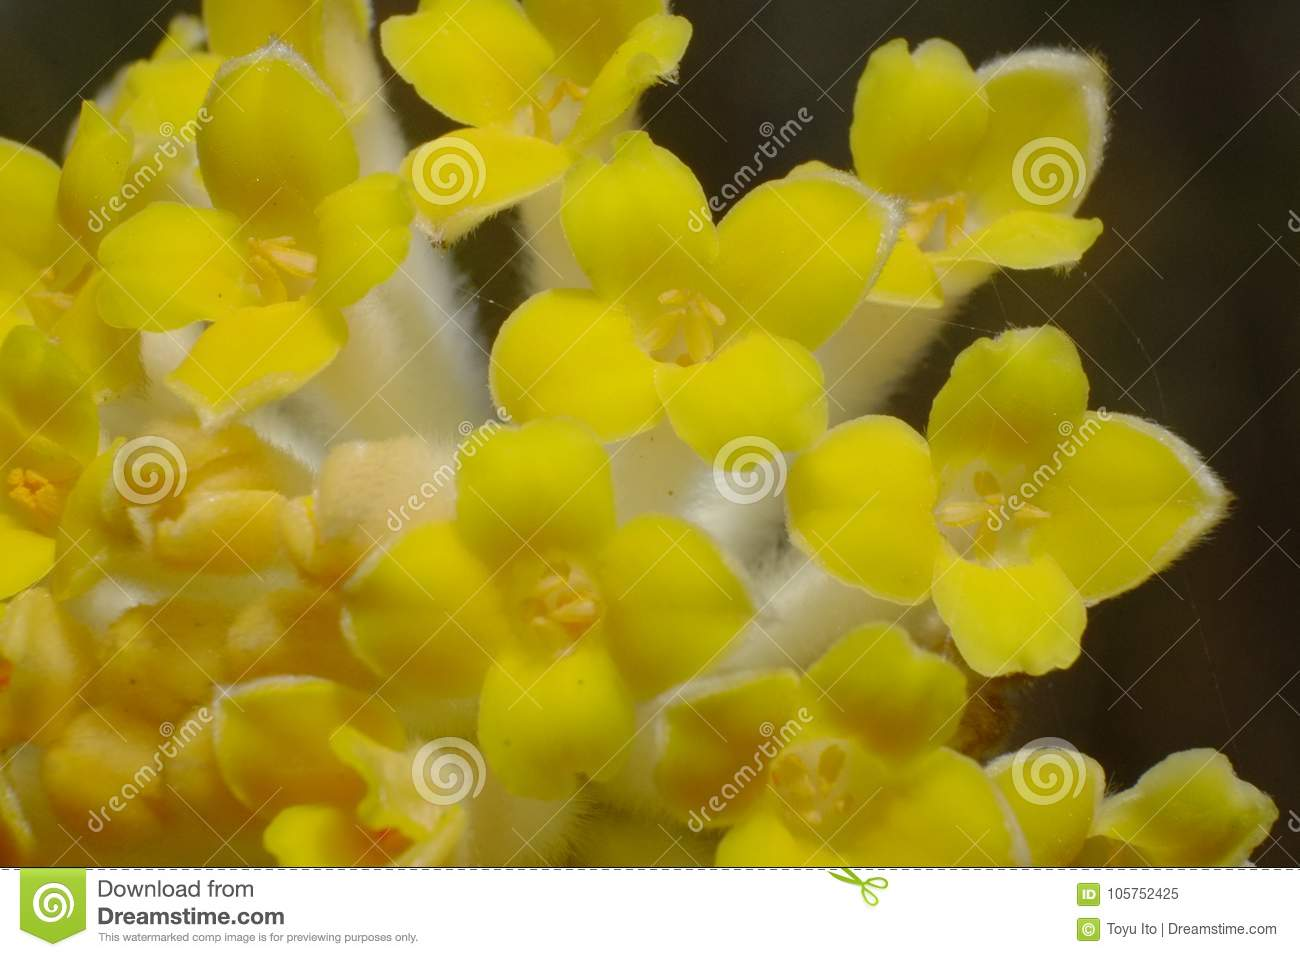 A Flower Of Mitsumata That Blooms Beautiful Yellow Flowers That